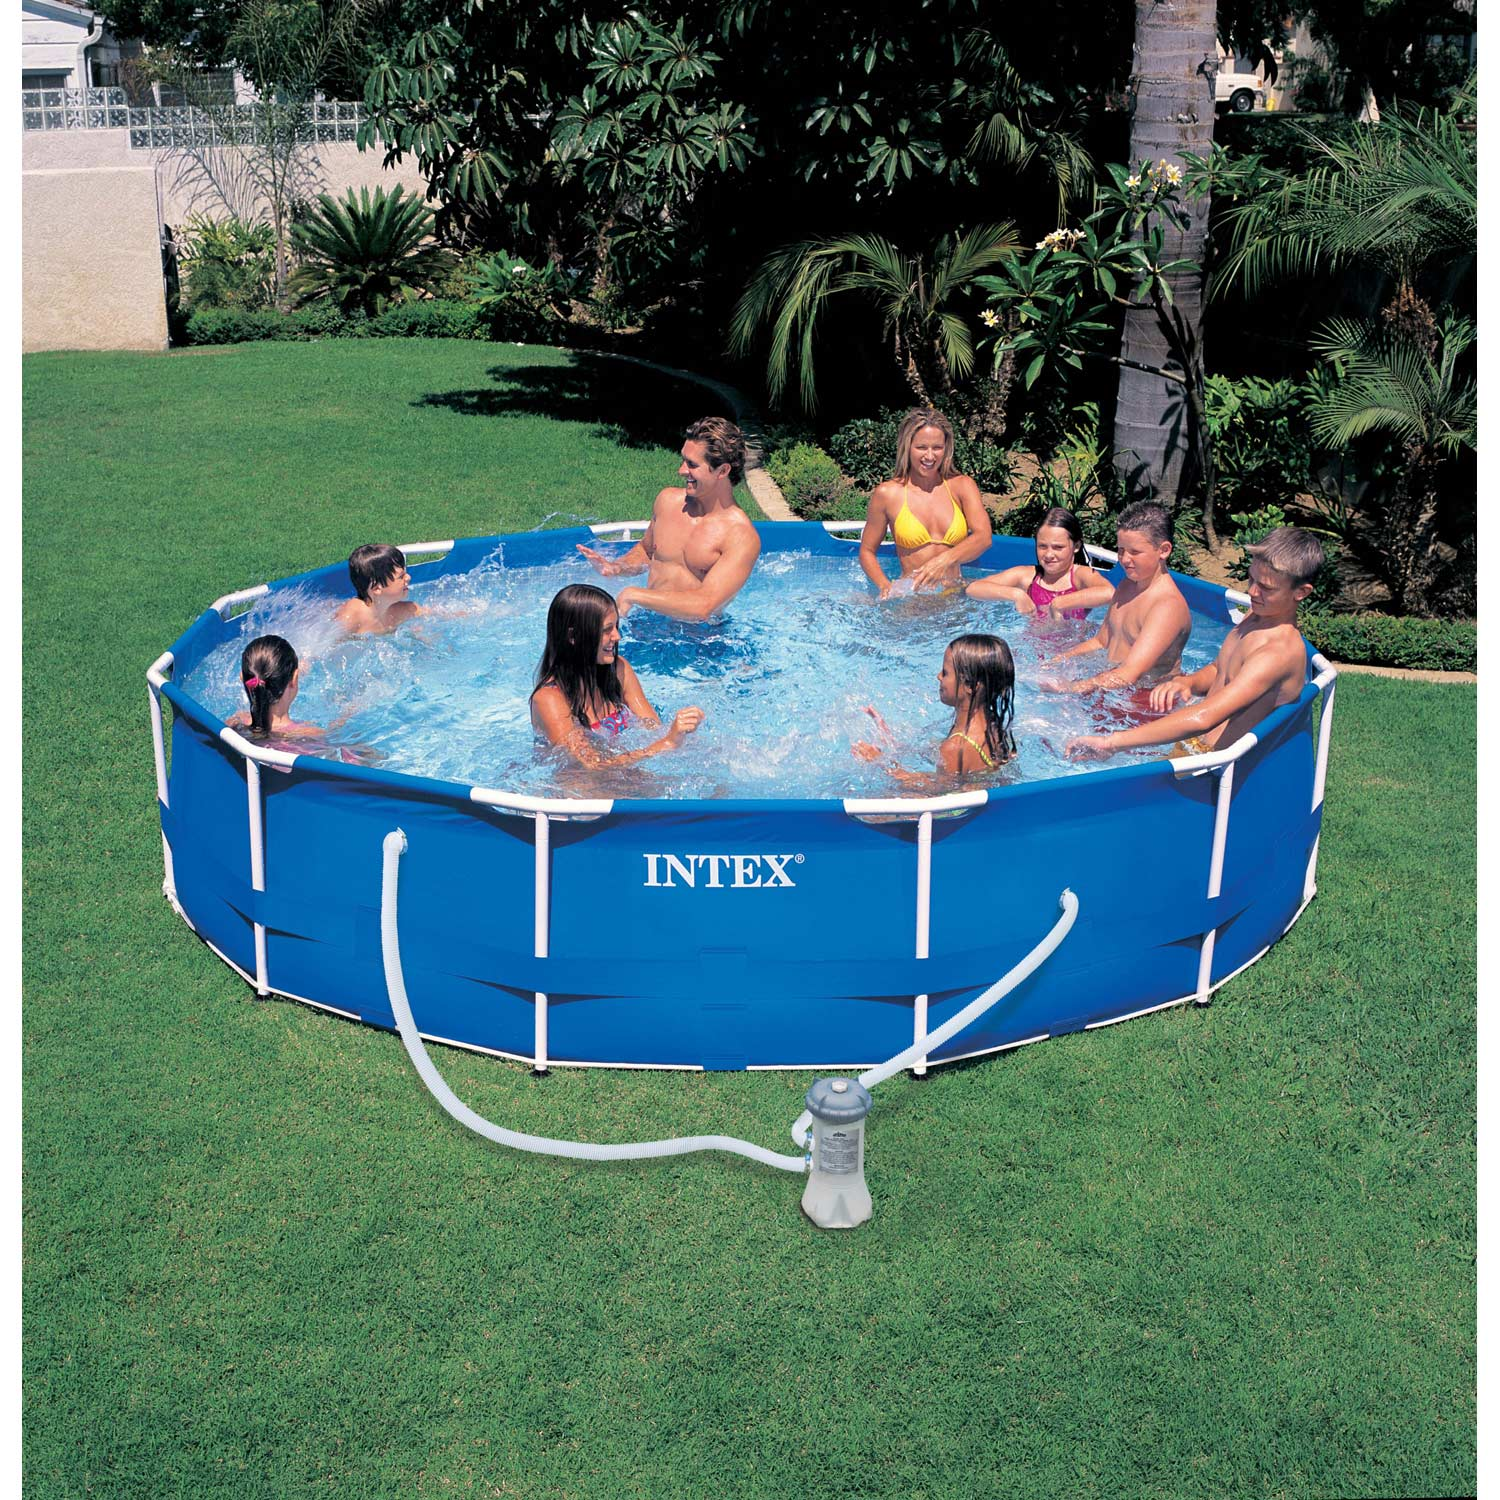 Piscine hors sol autoportante tubulaire metal frame intex for Solde piscine tubulaire intex